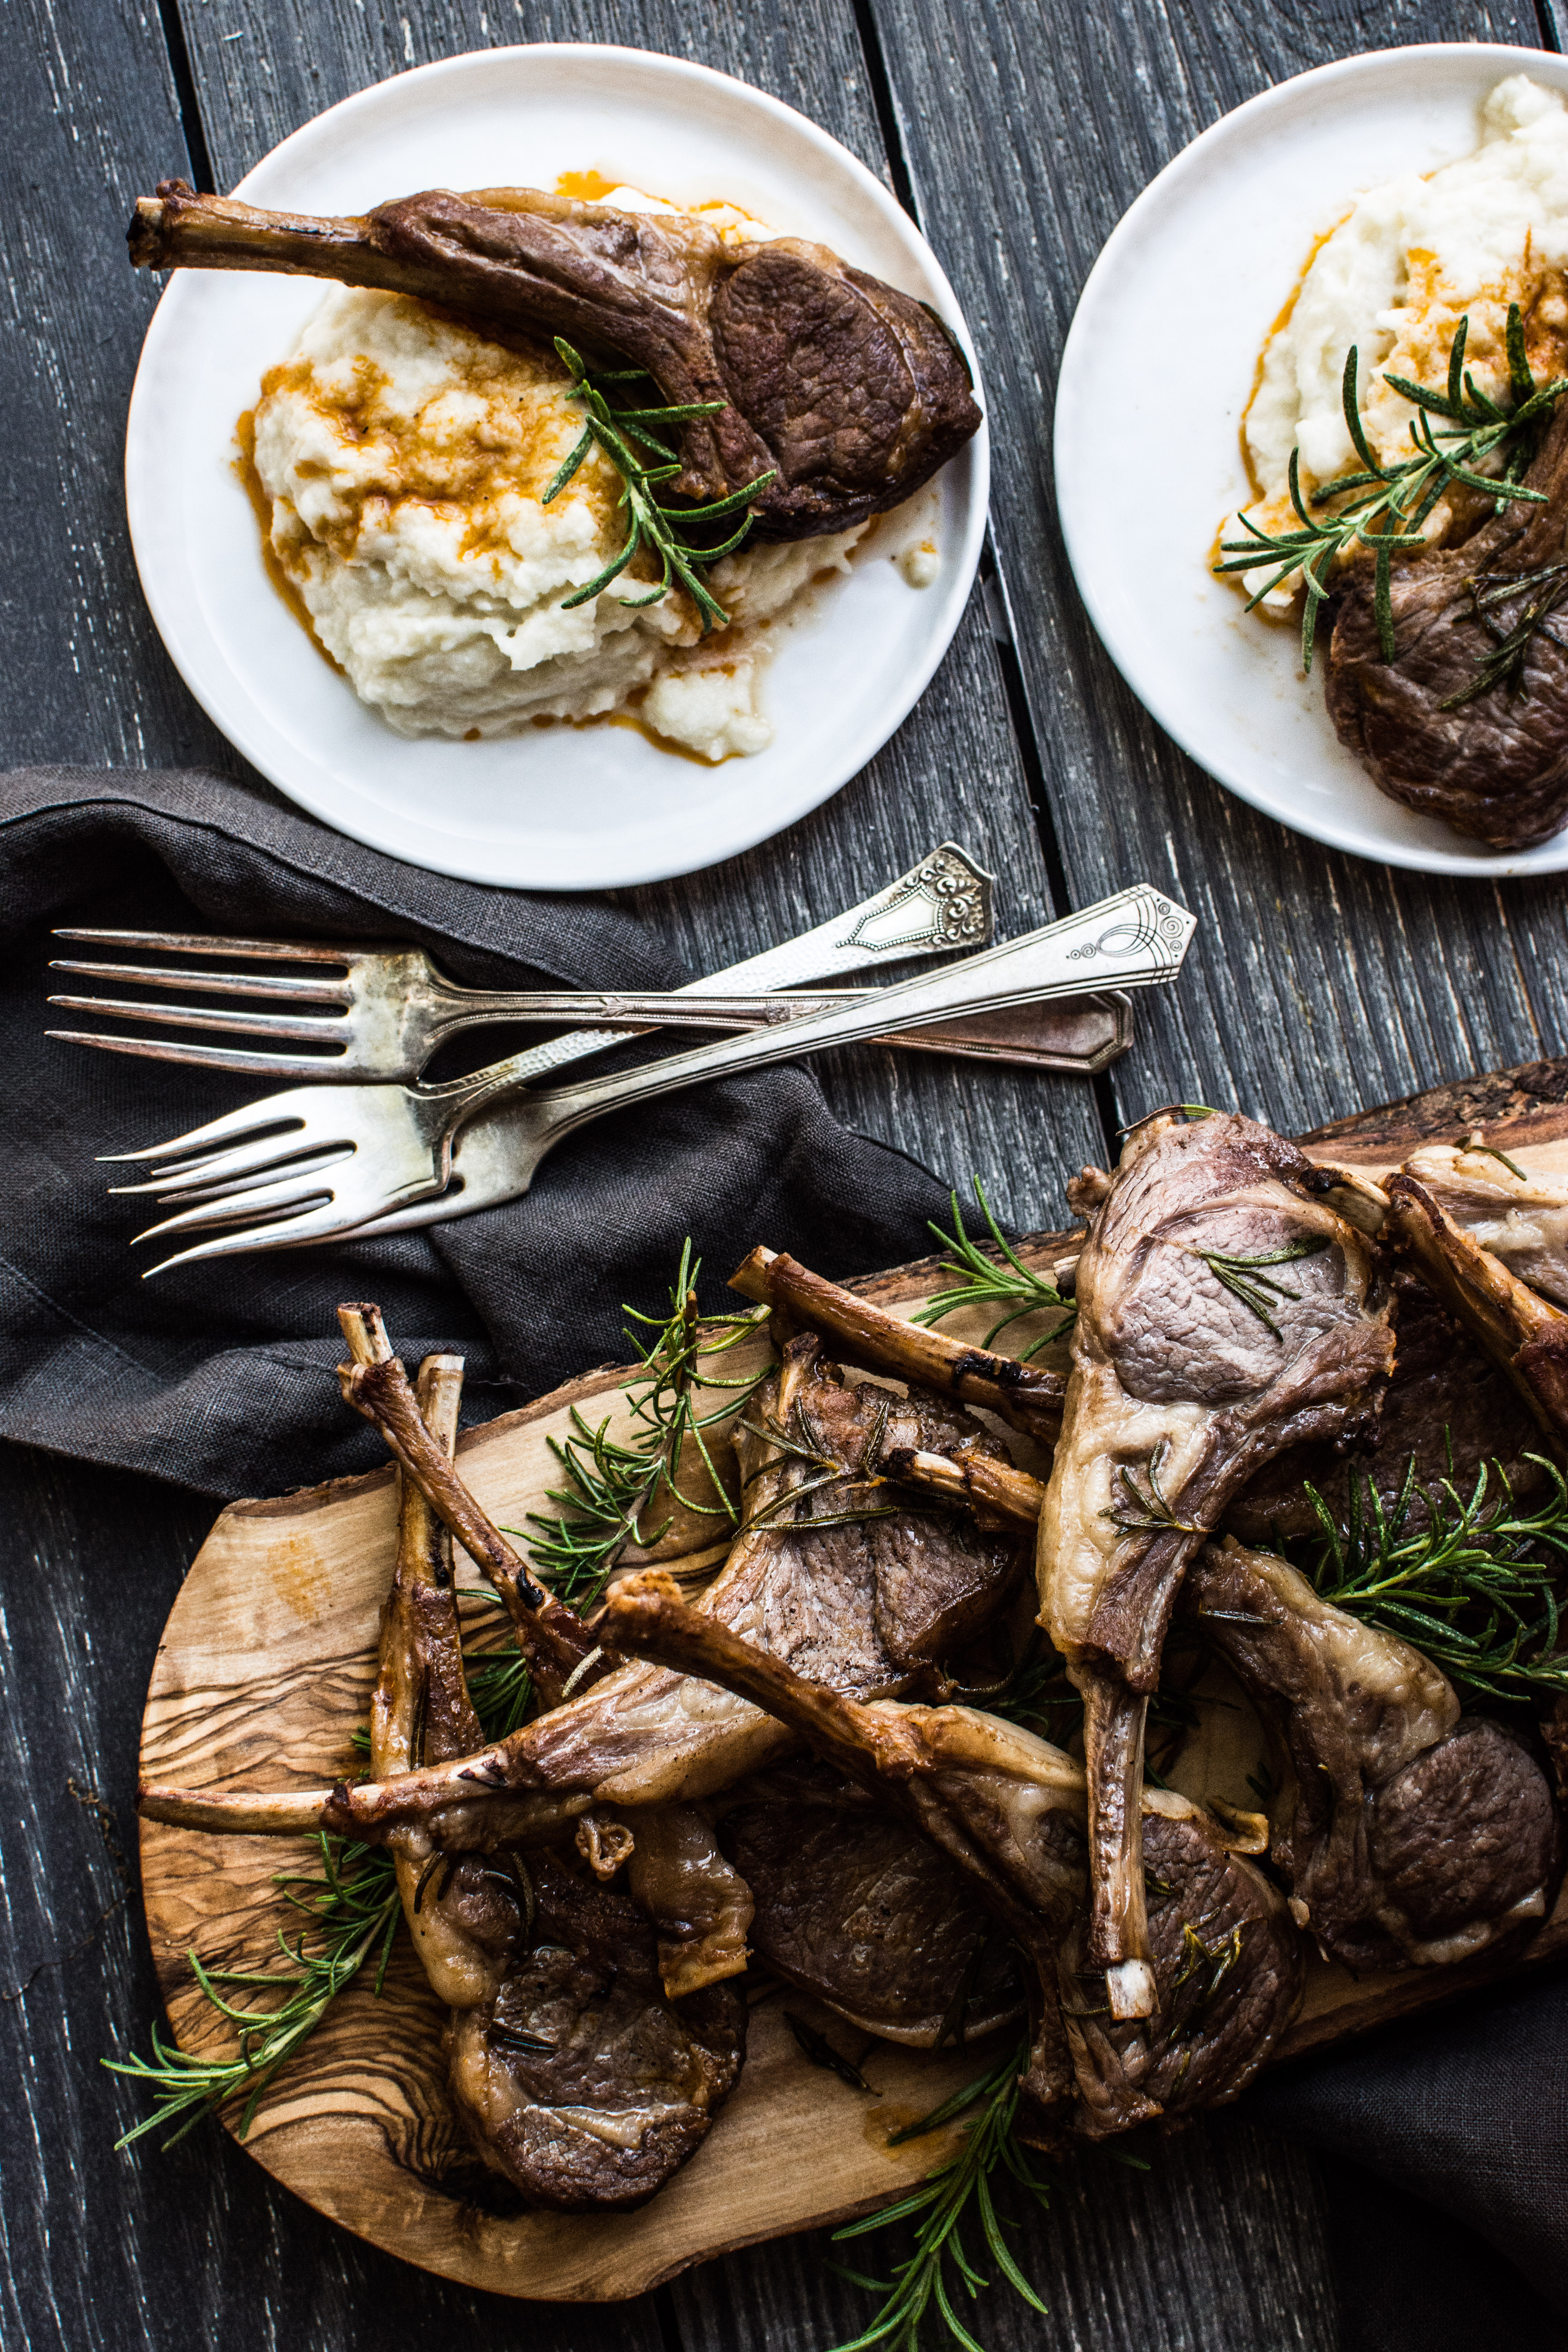 Author Note: A Quick Sear And Cook In The Instant Pot Ultra Creates A  Decadent Meal Of Salty Lamb Chops And A Rosemary And Tomato Infused Pan  Sauce.